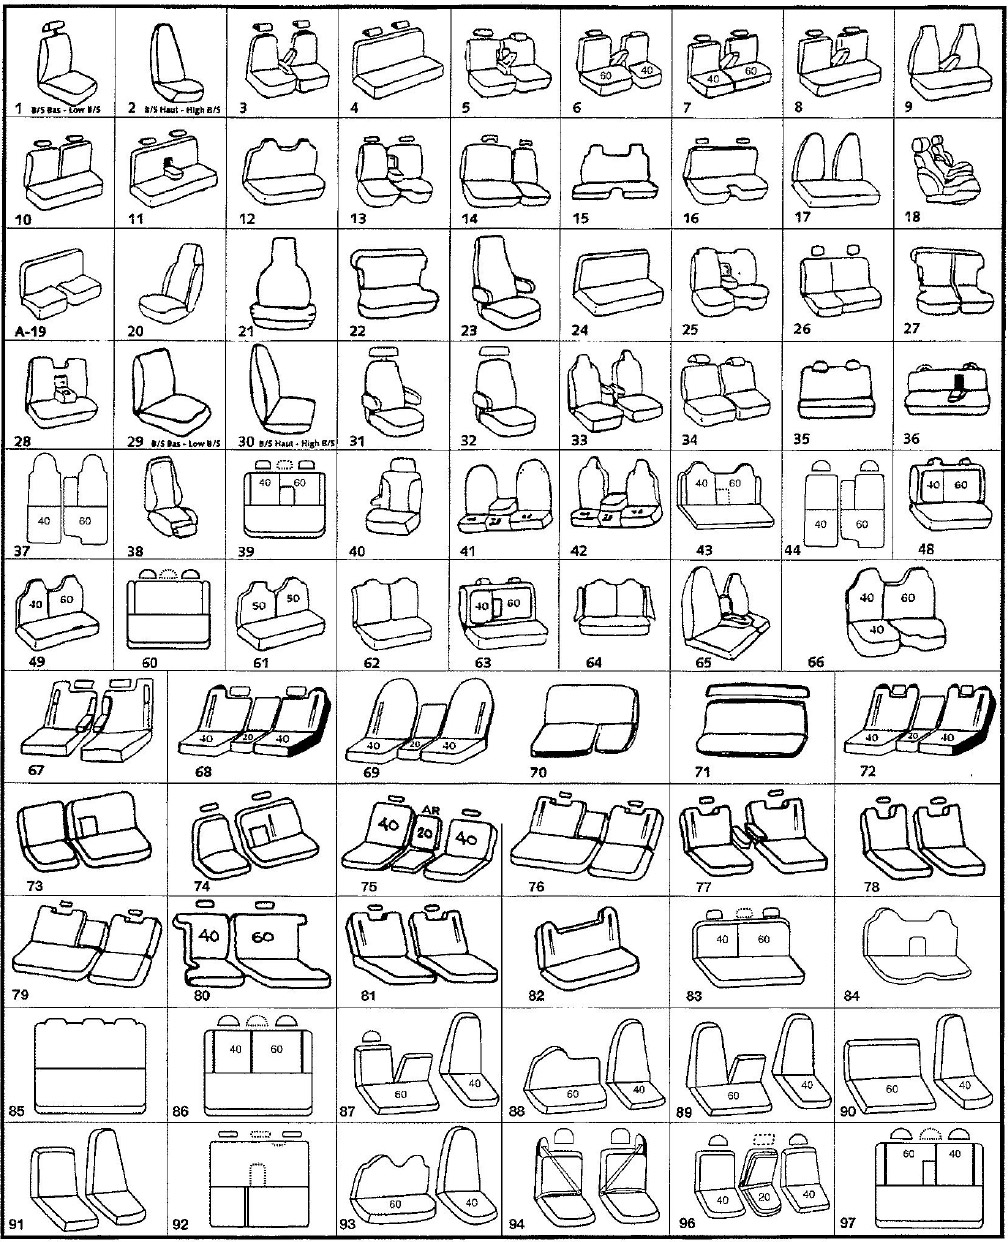 RPM Auto Seat Covers - Dessins de siège